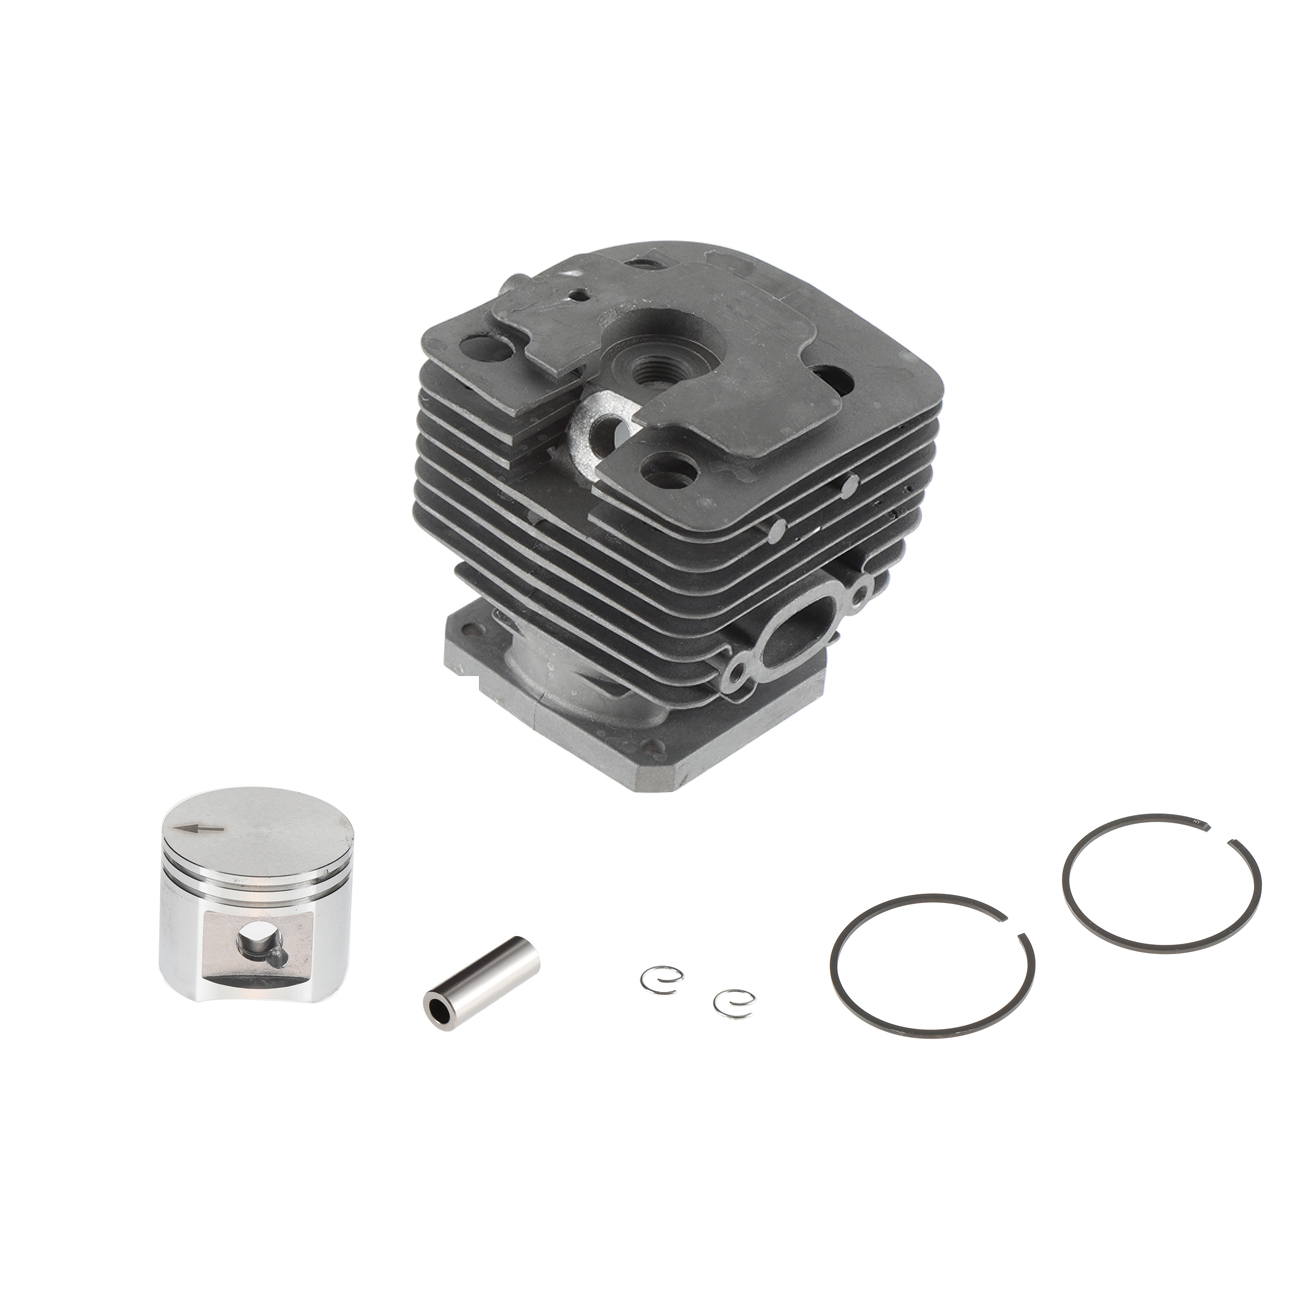 FOR STIHL FS450 CYLINDER & PISTON KIT, 42MM, REPLACES STIHL # 4128-020-1211FOR STIHL FS450 CYLINDER & PISTON KIT, 42MM, REPLACES STIHL # 4128-020-1211